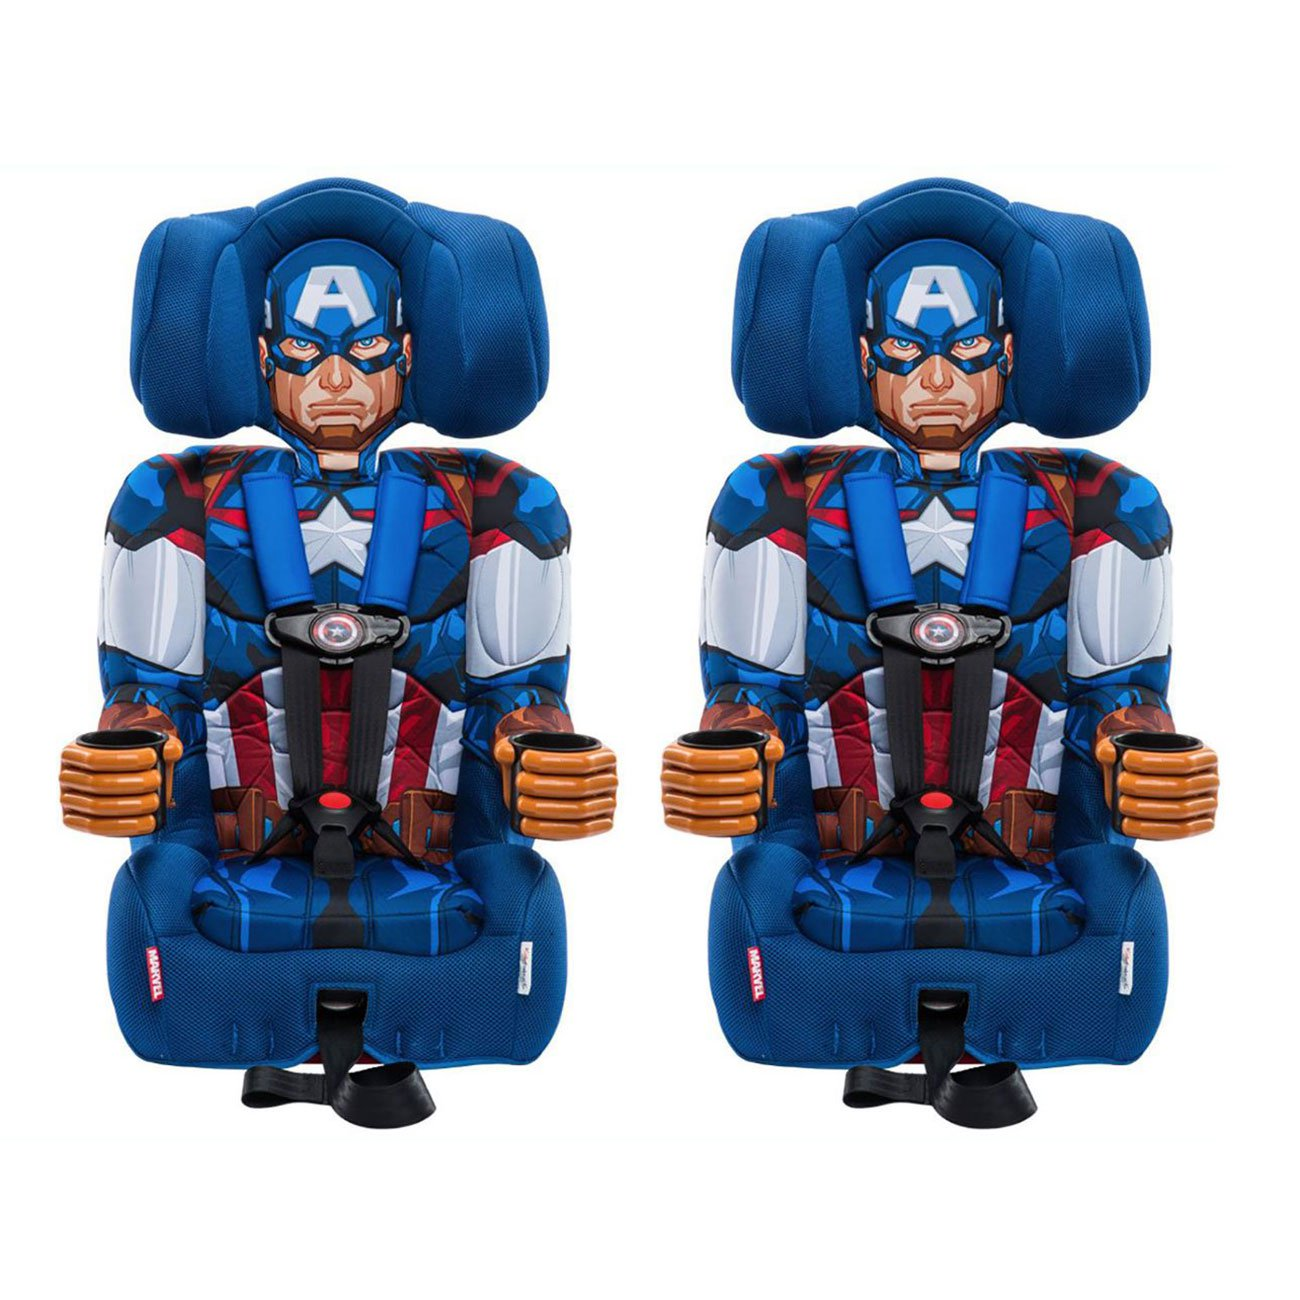 Kids Embrace Marvel Avengers Captain America Combination Booster Seat (2 Pack) by KidsEmbrace